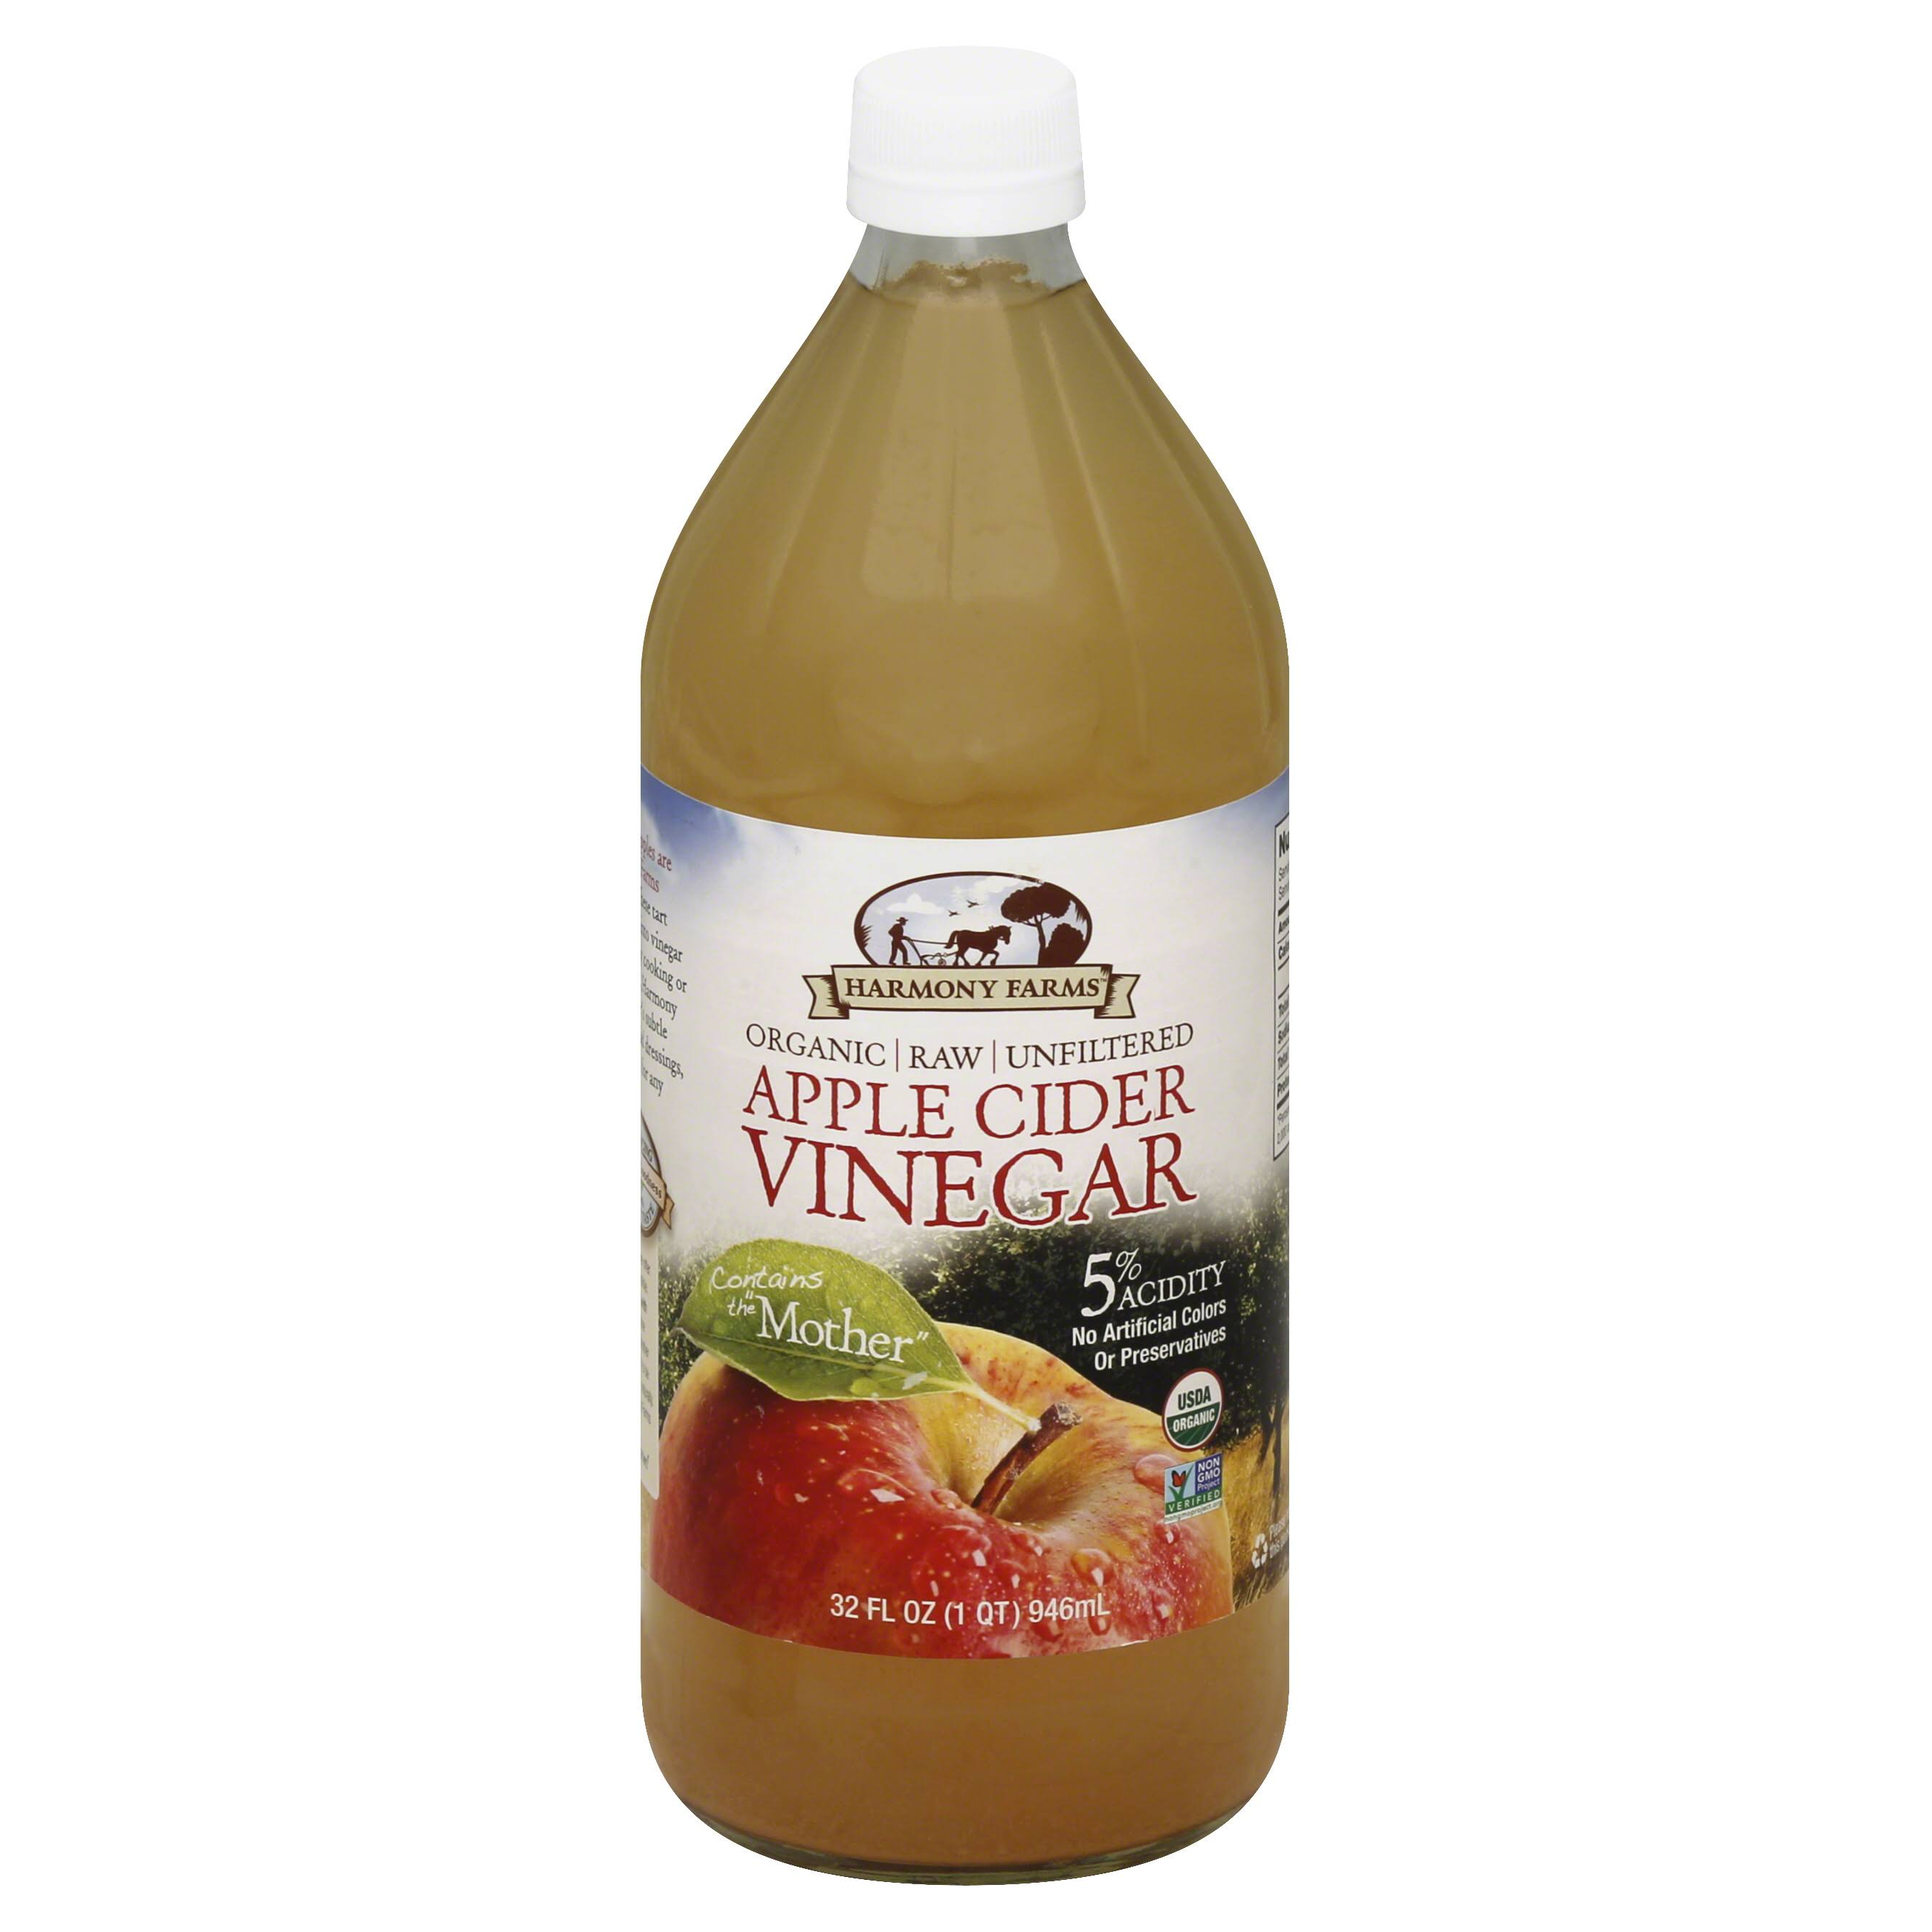 Harmony Farms Apple Cider Vinegar Organic - Raw, Unfiltered, 32oz